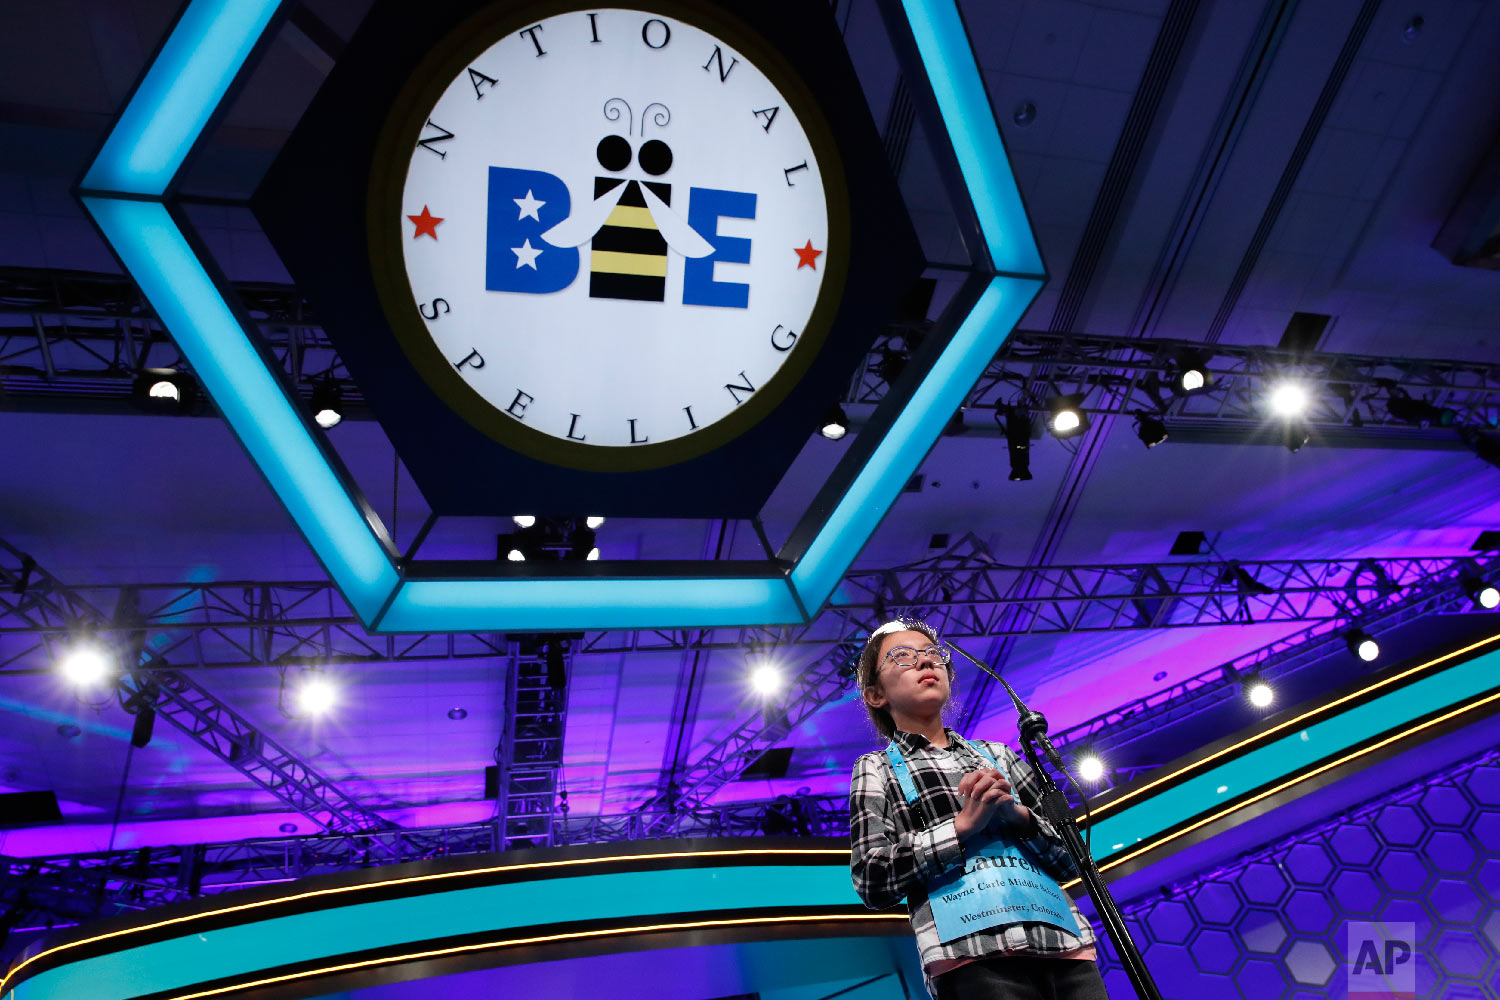 Lauren Guo, 12, from Arvada, Colo., competes in the Scripps National Spelling Bee in Oxon Hill, Md., Thursday, May 31, 2018. (AP Photo/Jacquelyn Martin)